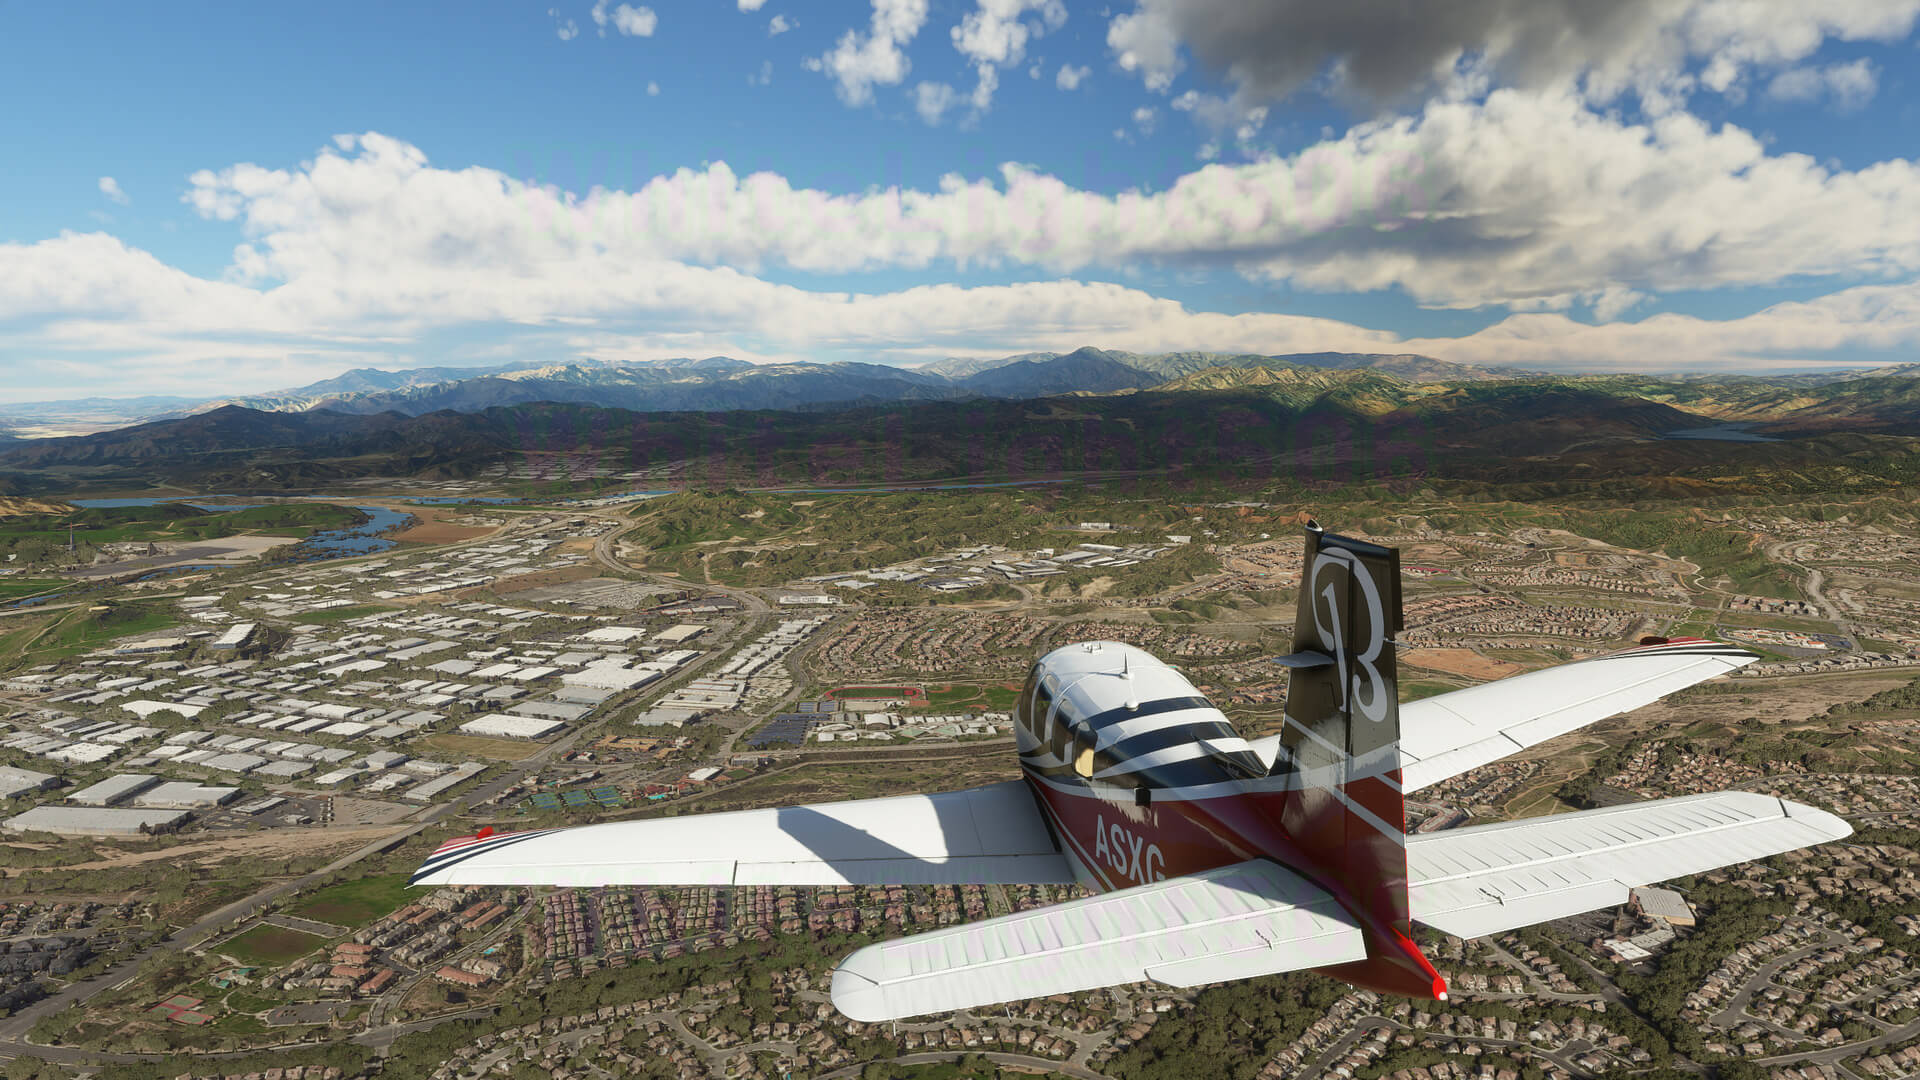 Microsoft Flight Simulator captura 2 avion